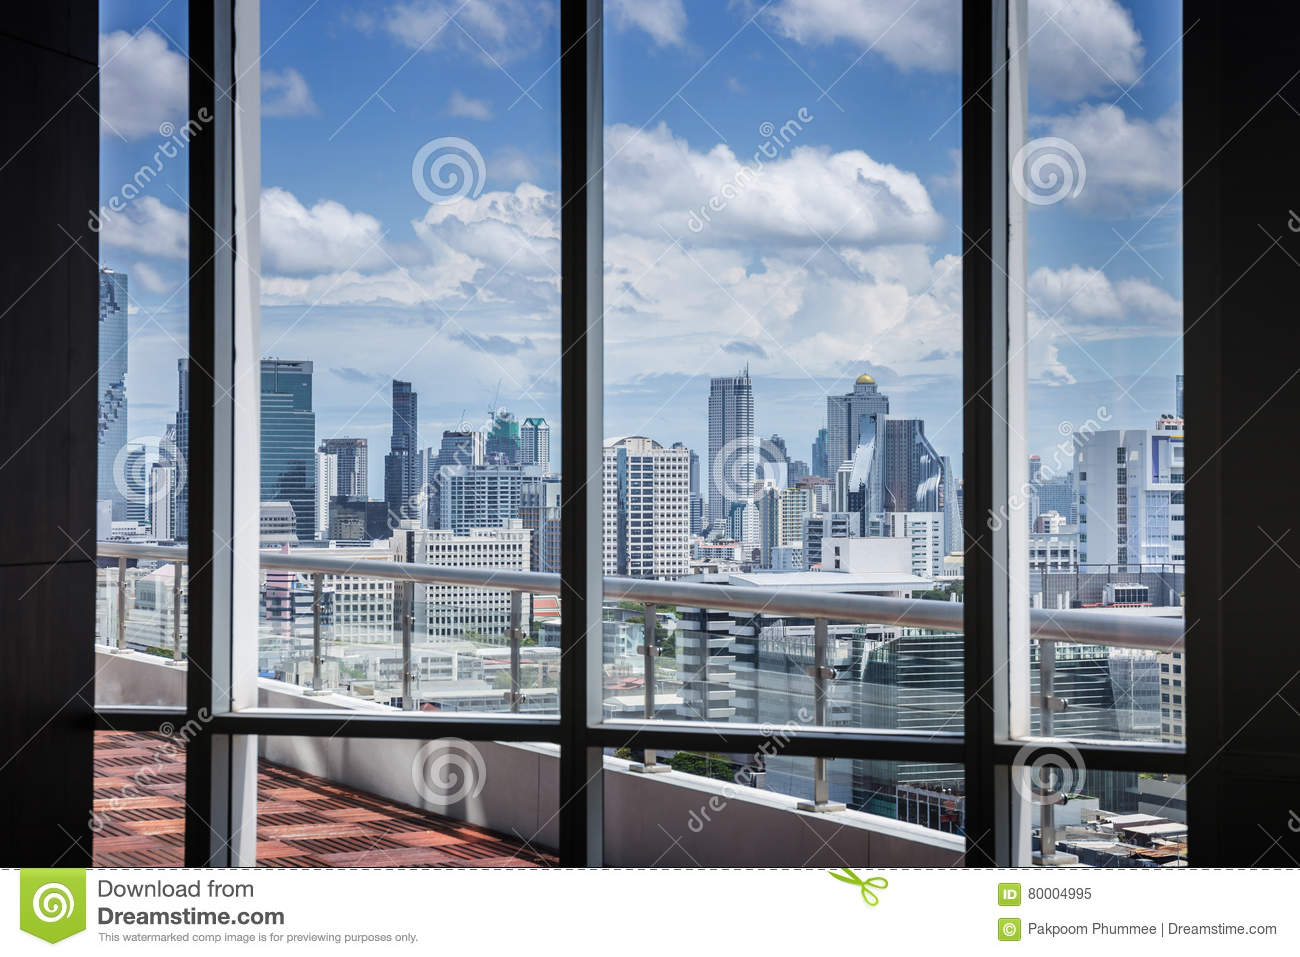 Download Business Contemporary Meeting Room Office Working Concept With Frame Window And City Background Stock Image